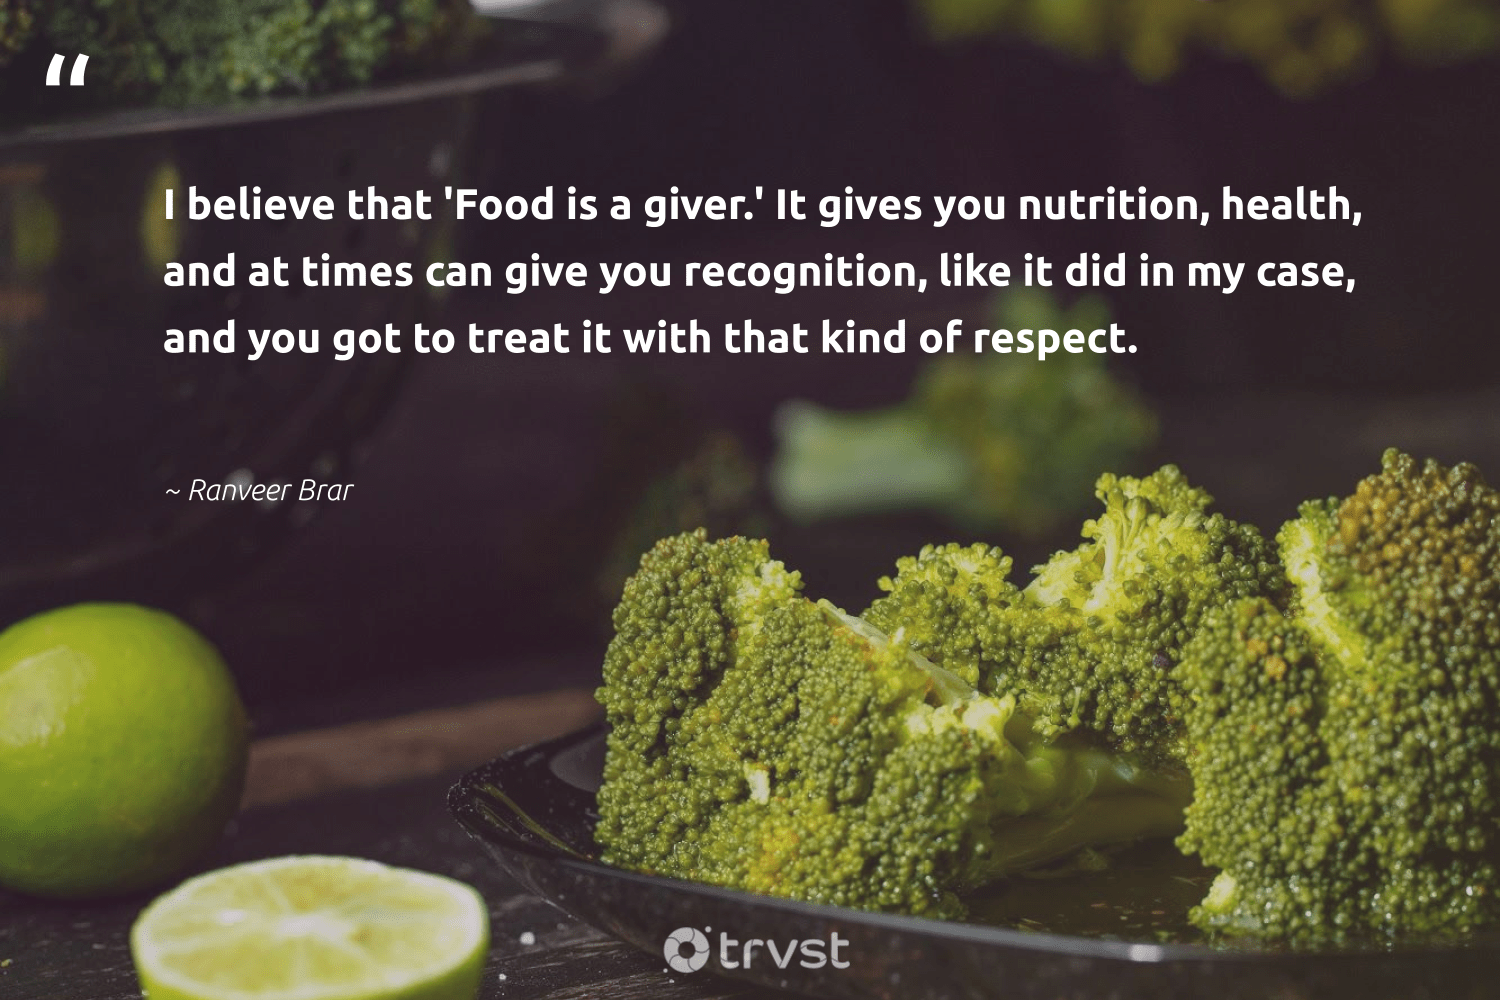 """I believe that 'Food is a giver.' It gives you nutrition, health, and at times can give you recognition, like it did in my case, and you got to treat it with that kind of respect.""  - Ranveer Brar #trvst #quotes #food #health #nutrition #foodforthepoor #nevergiveup #equalopportunity #takeaction #hunger #mindset #equalrights"